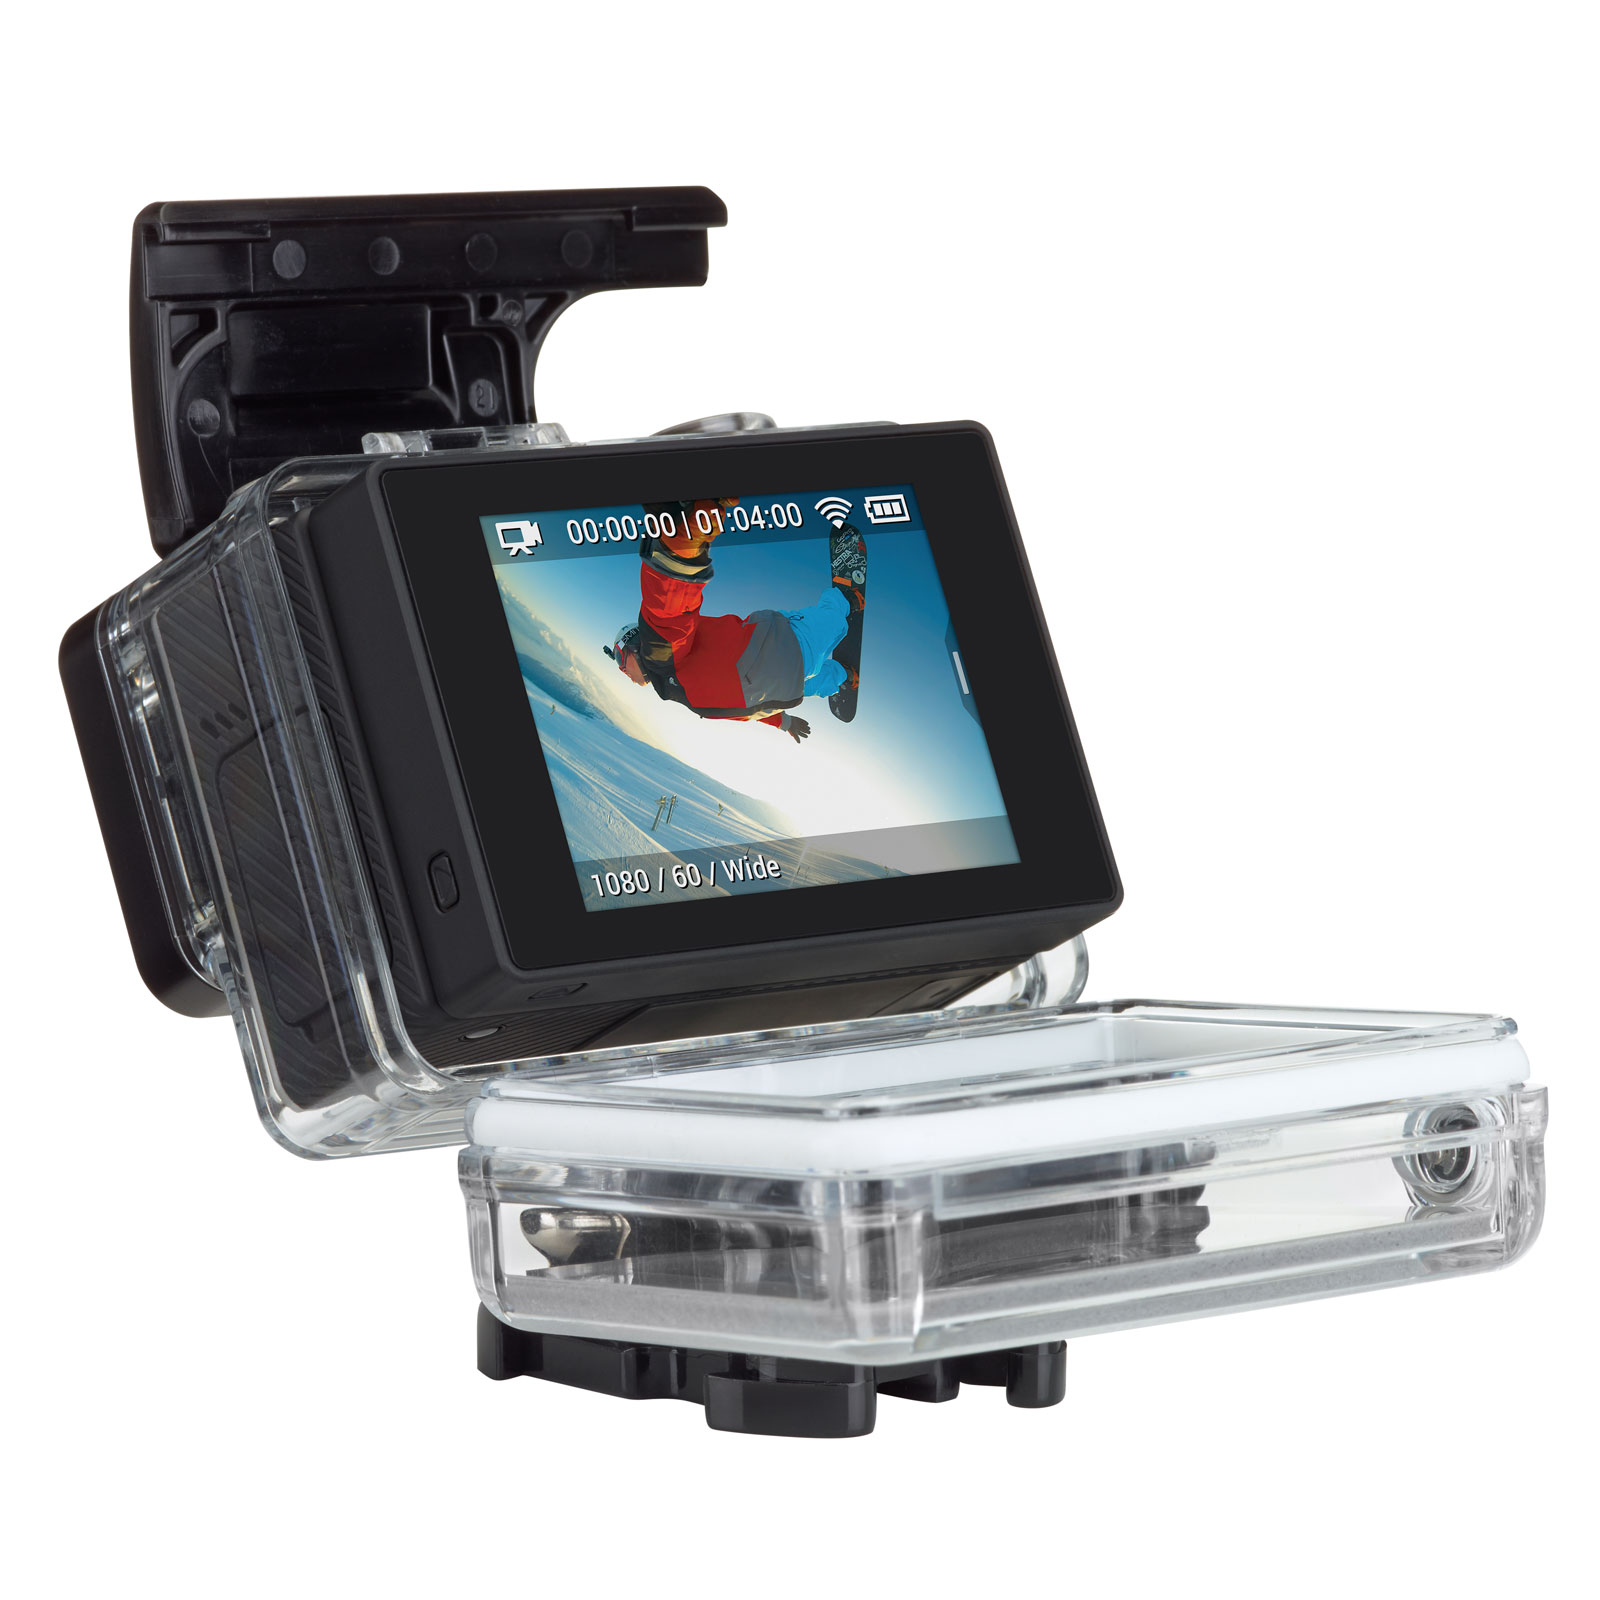 gopro lcd touch bacpac accessoires cam ra sportive gopro sur. Black Bedroom Furniture Sets. Home Design Ideas